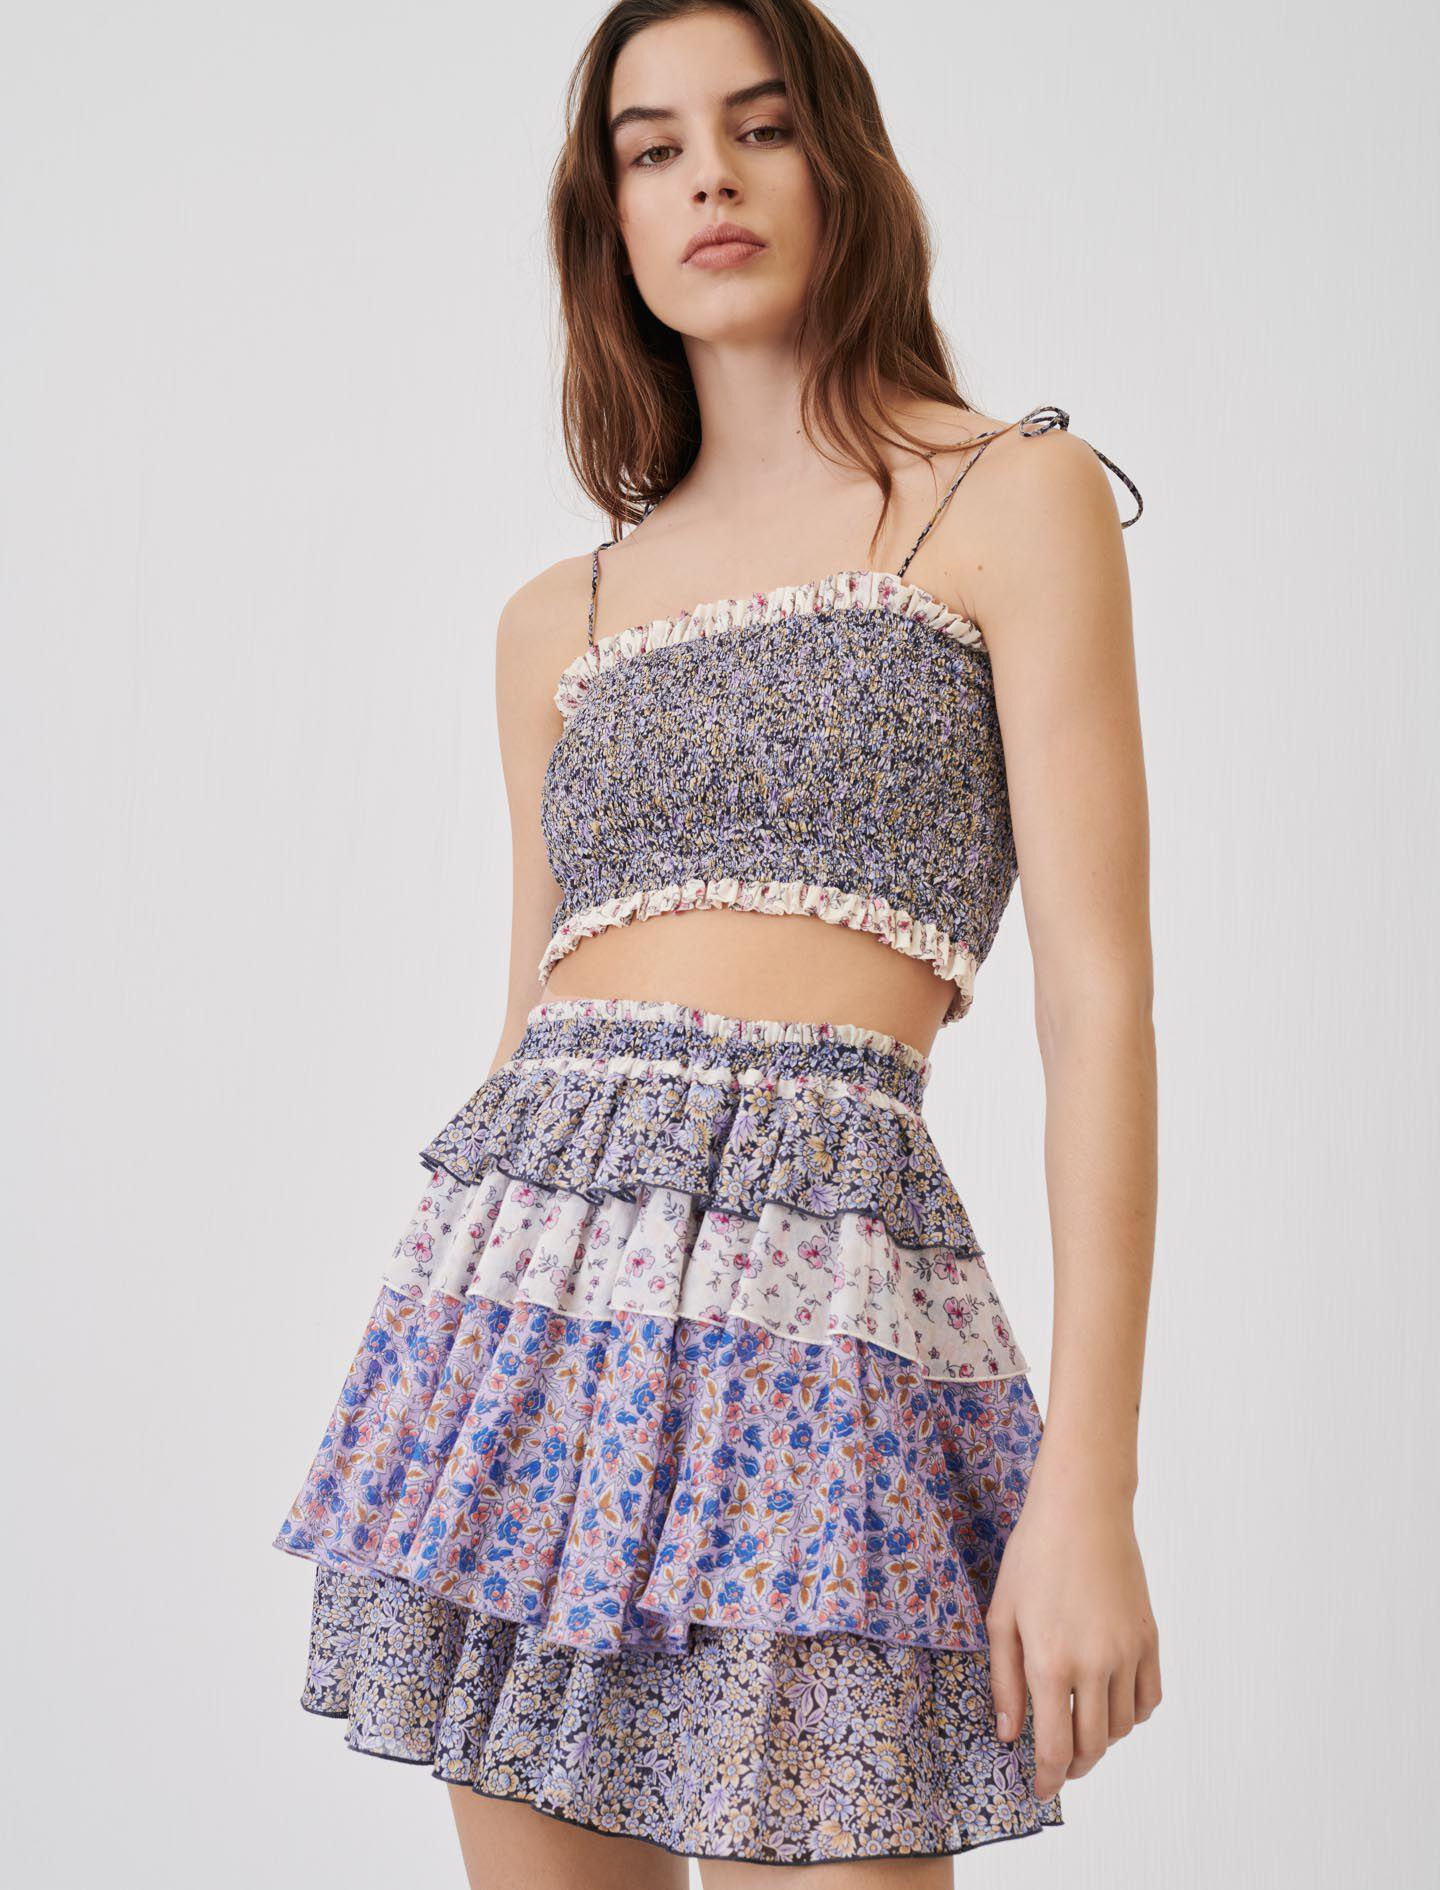 PRINTED COTTON VOILE SKIRT WITH RUFFLES